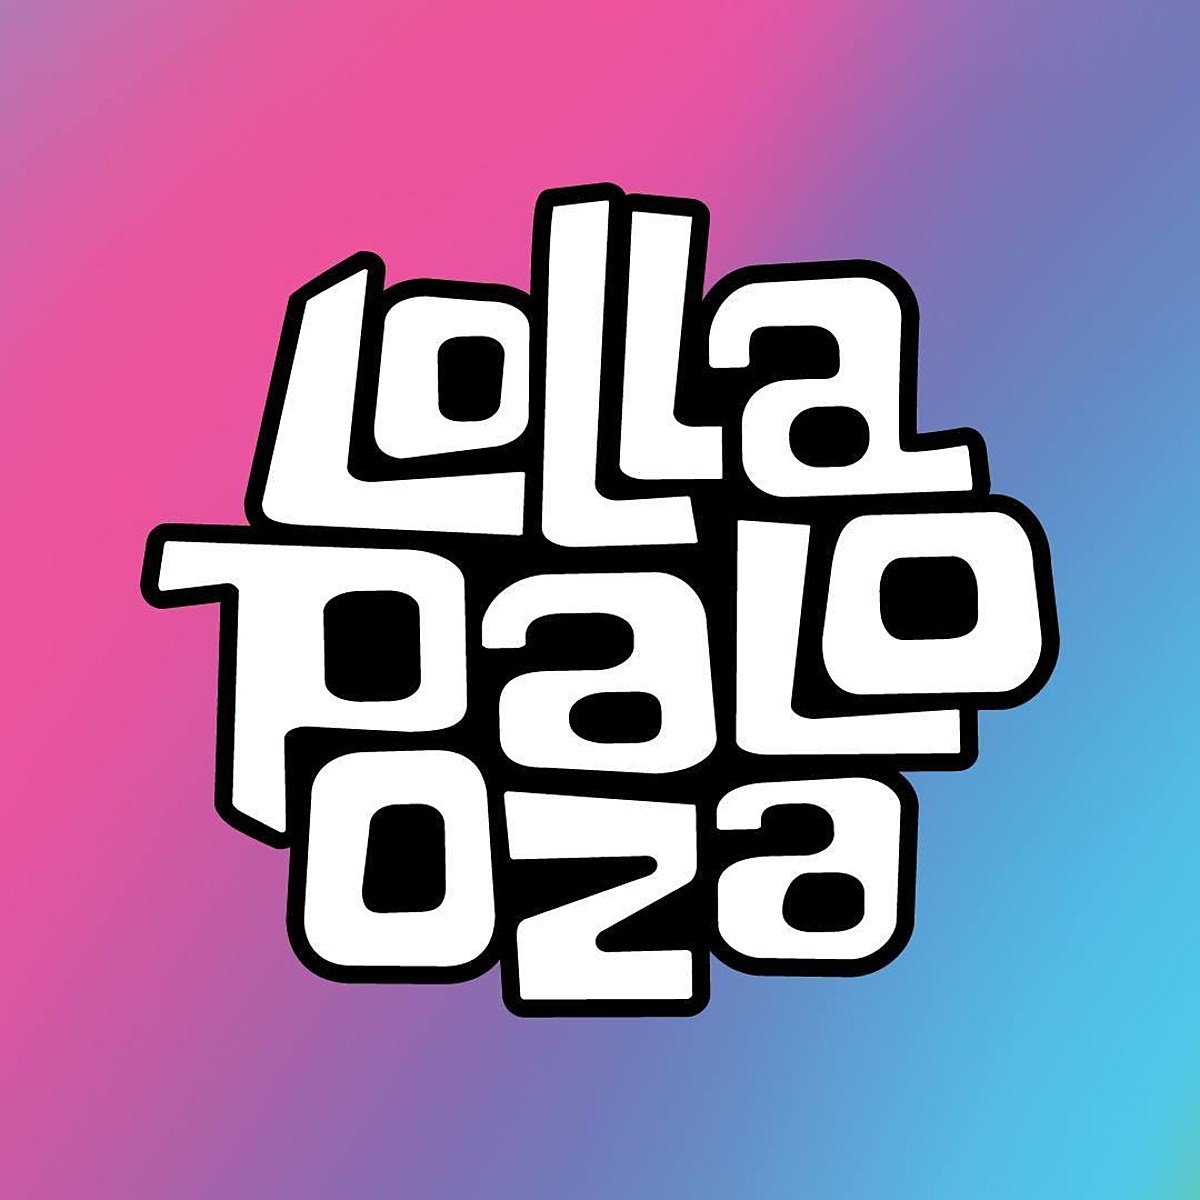 Lollapalooza 2019 set times: Tame Impala vs Childish Gambino + more conflicts